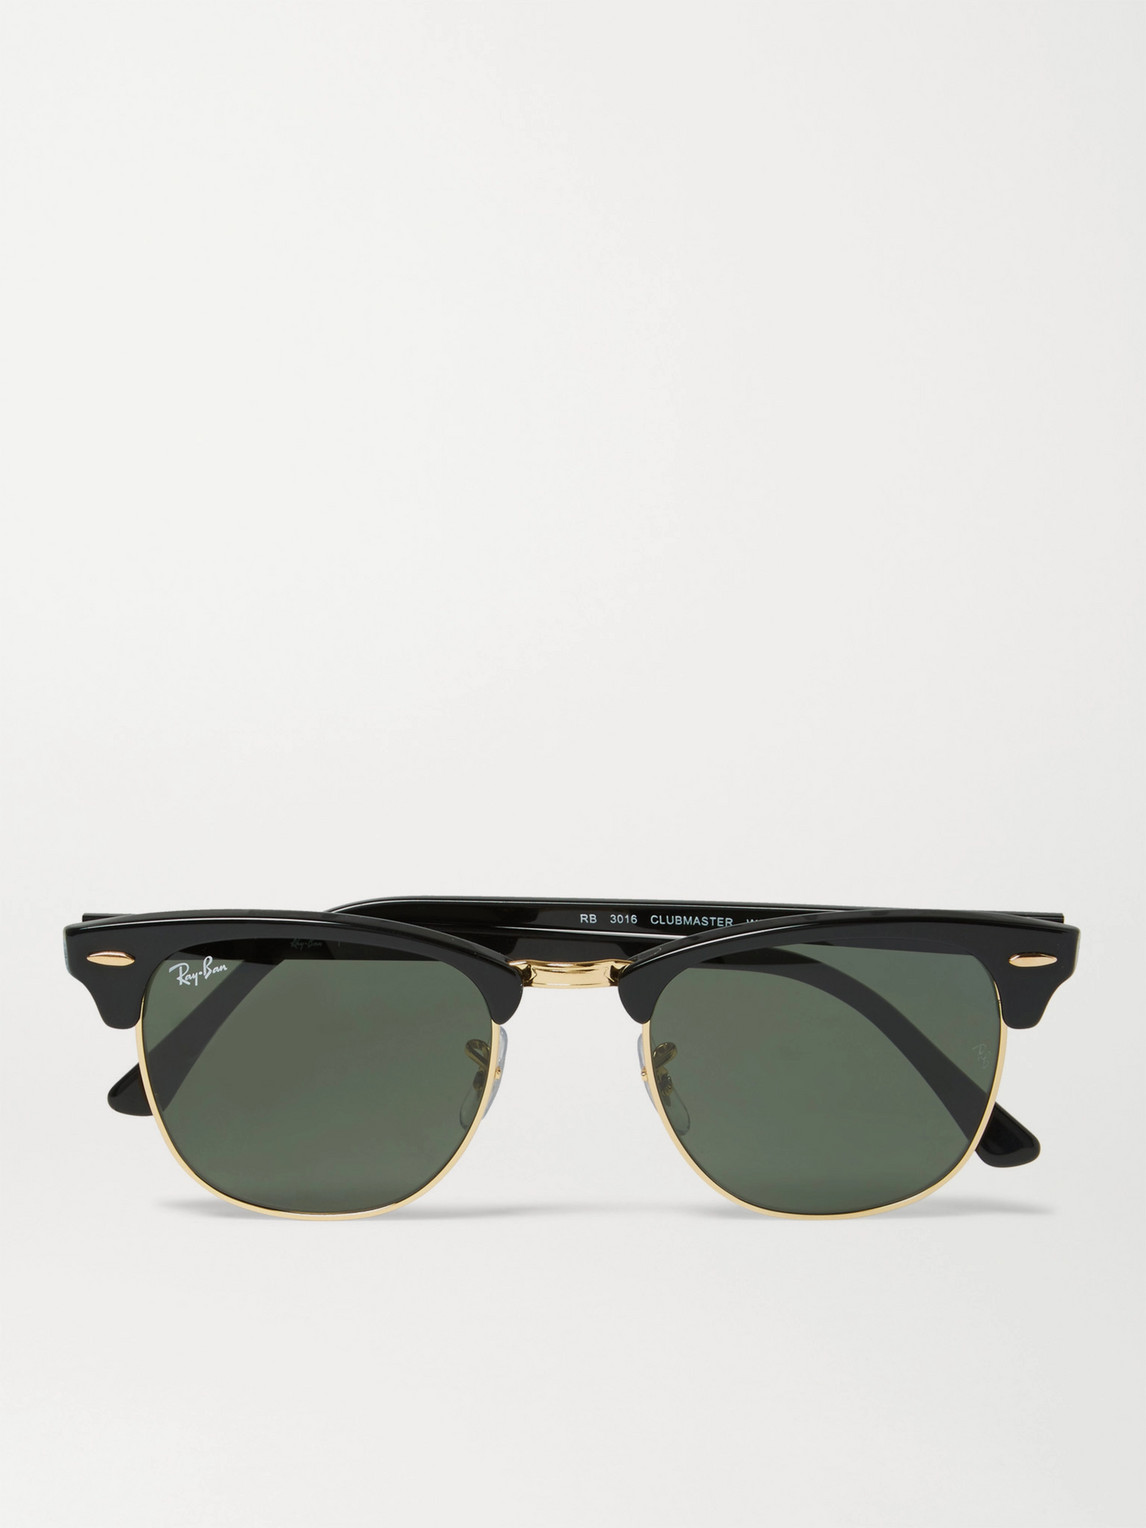 Ray Ban Sunglasses CLUBMASTER SQUARE-FRAME ACETATE AND GOLD-TONE SUNGLASSES